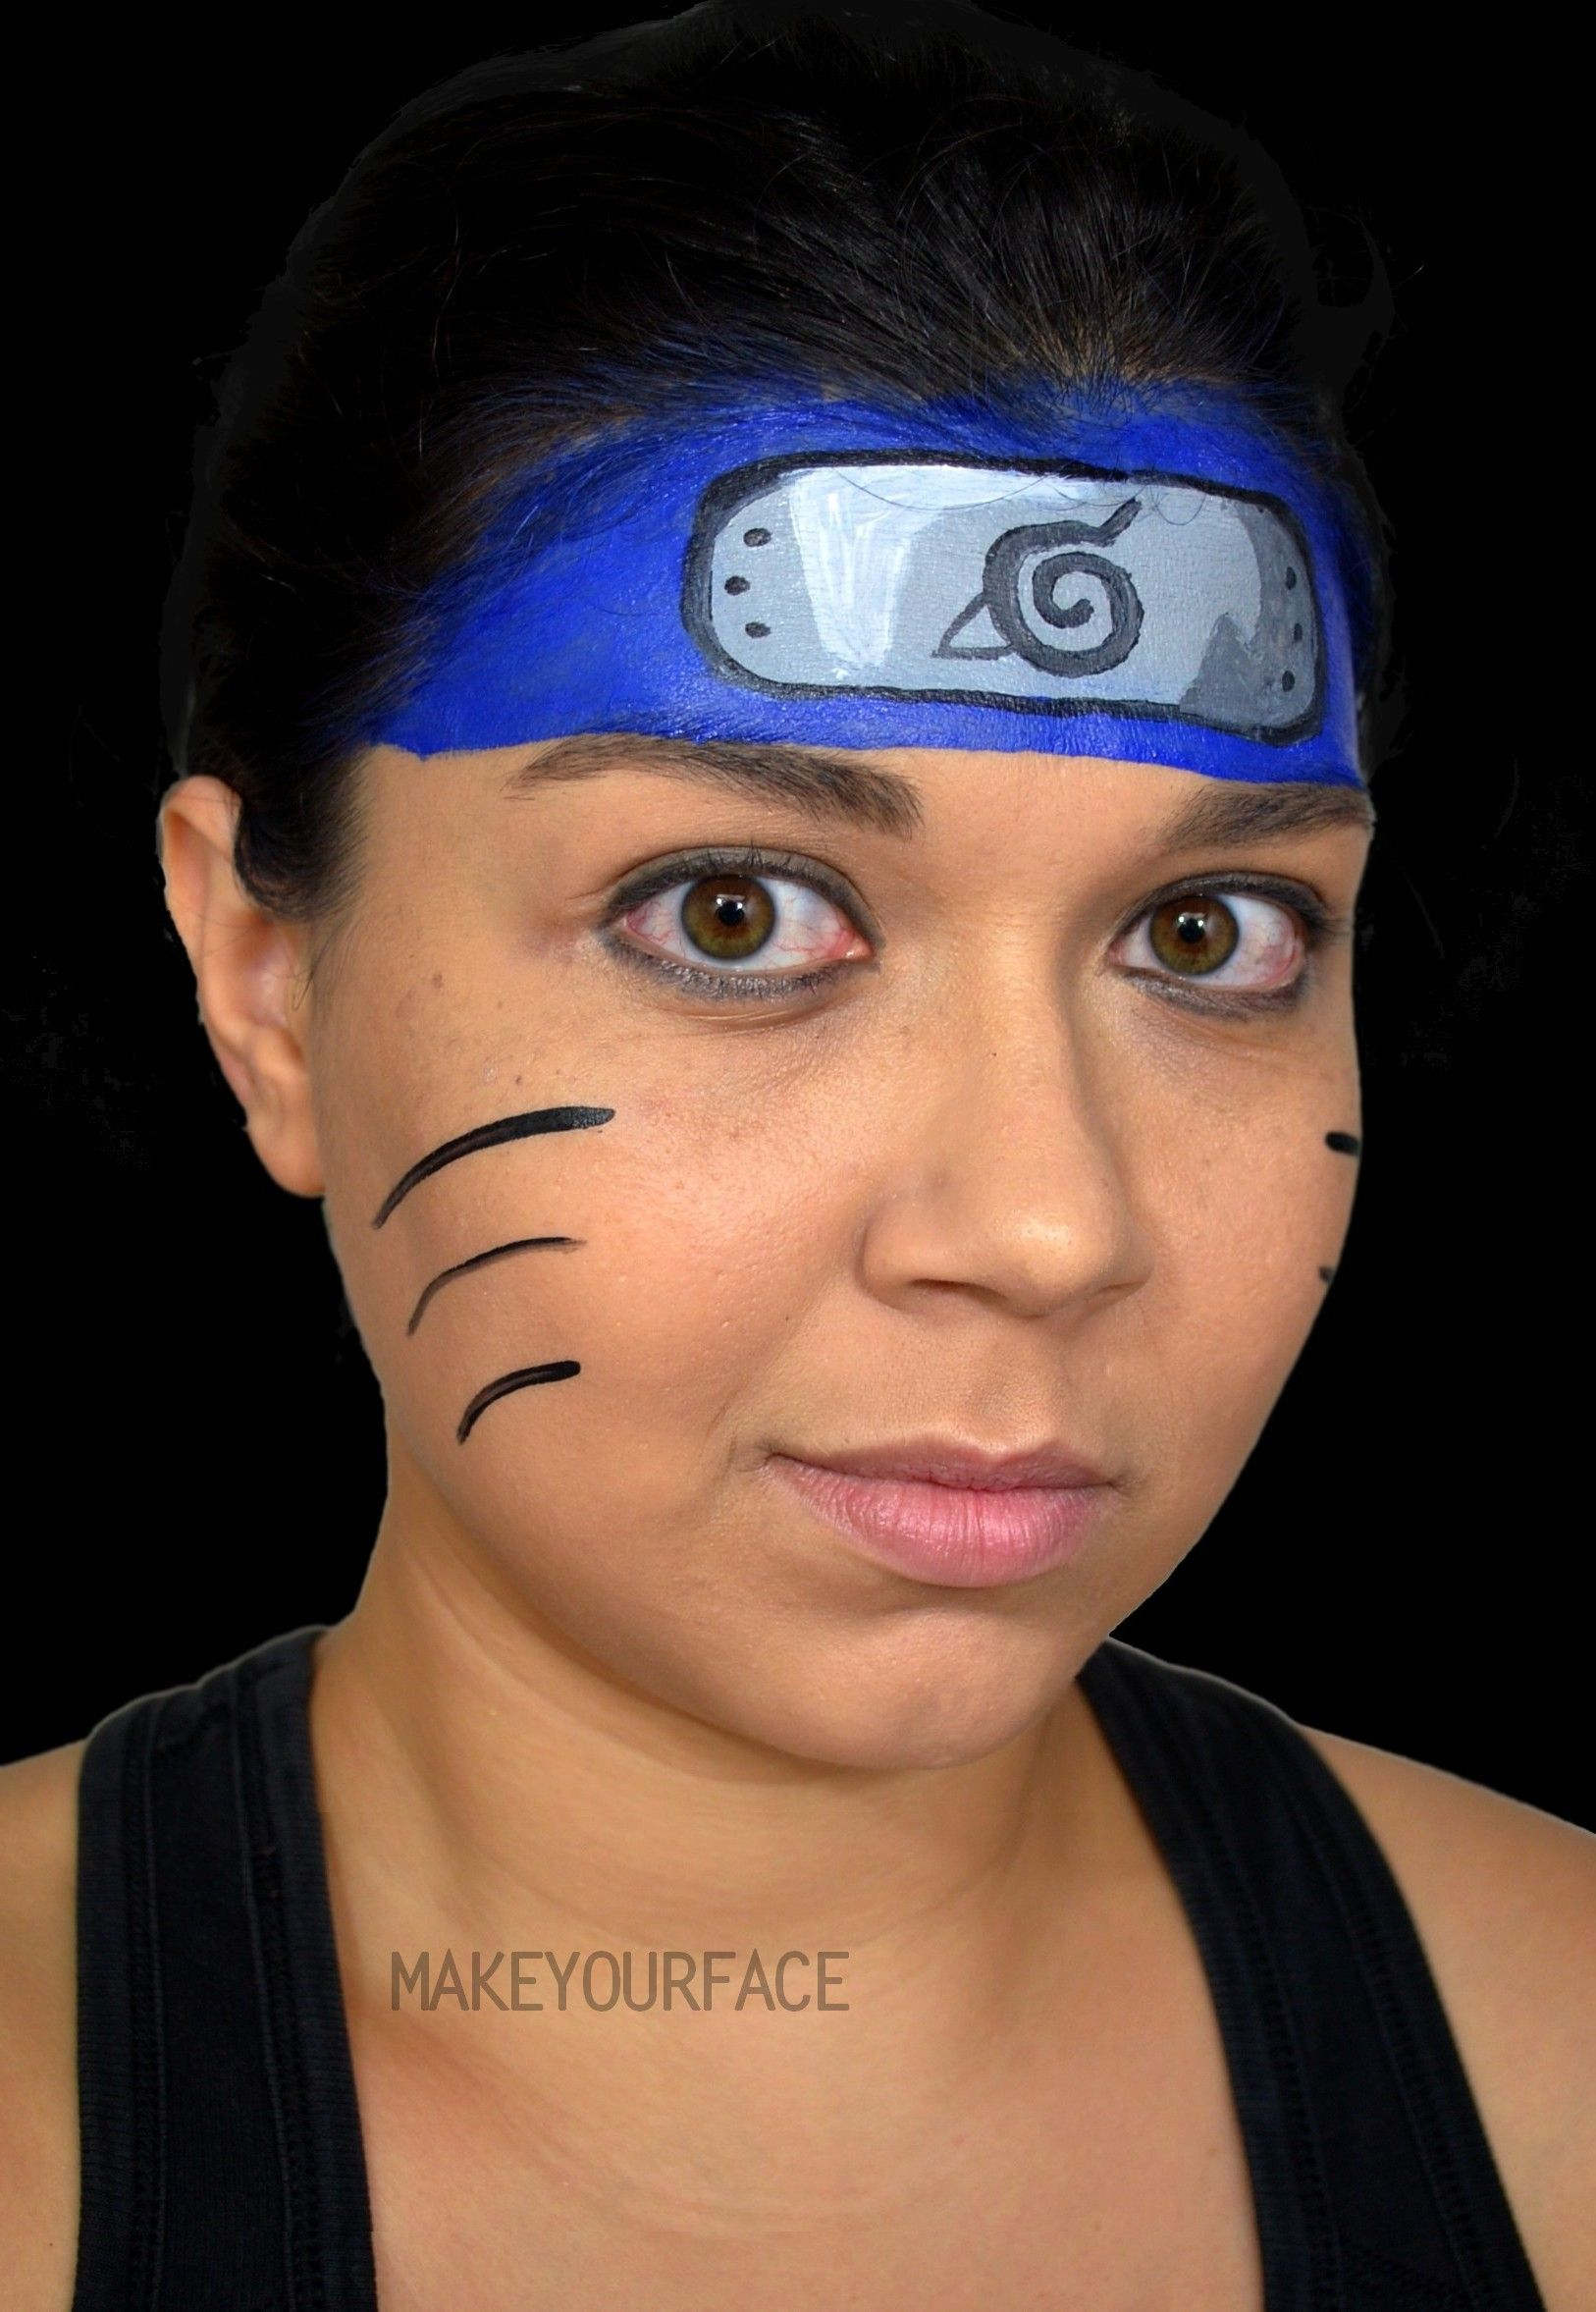 See Naruto Makeup Tutorial Http Youtu Be Cxnsbkrtniq Superhero Face Painting Face Painting Easy Kids Face Paint